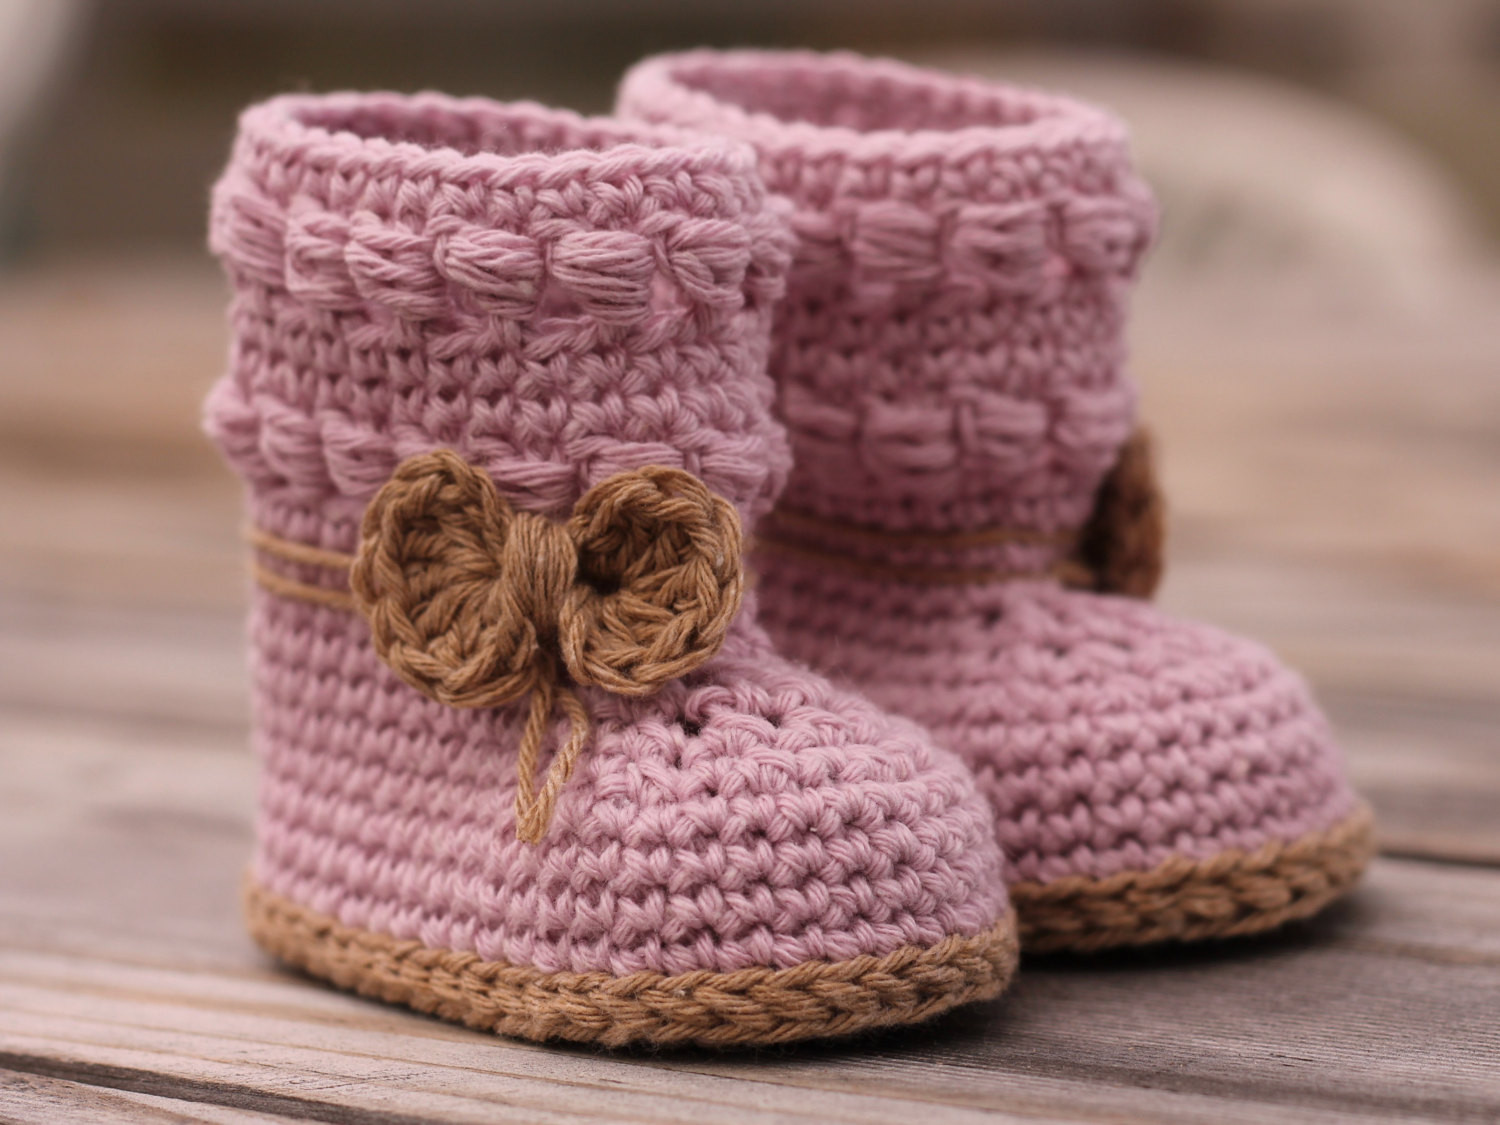 Crochet Baby Booties Elegant Crochet Pattern Girls Booties Baby Bootie Crochet Boots Of Crochet Baby Booties Fresh Crochet Baby Mary Jane Booties Free Patterns